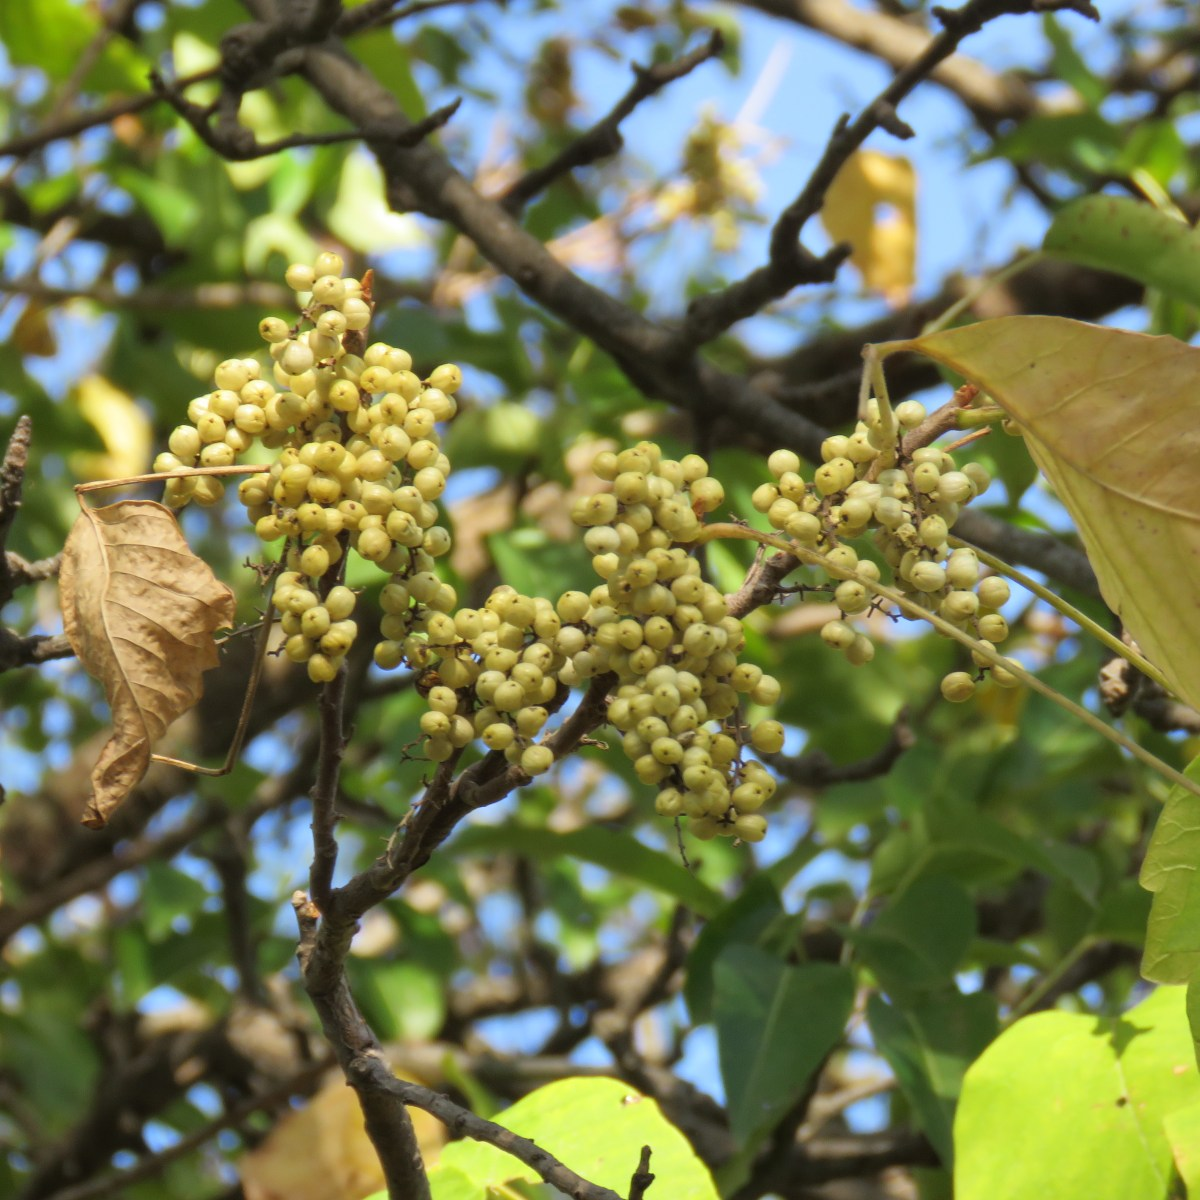 Yellowish poison ivy berries in mid-summer